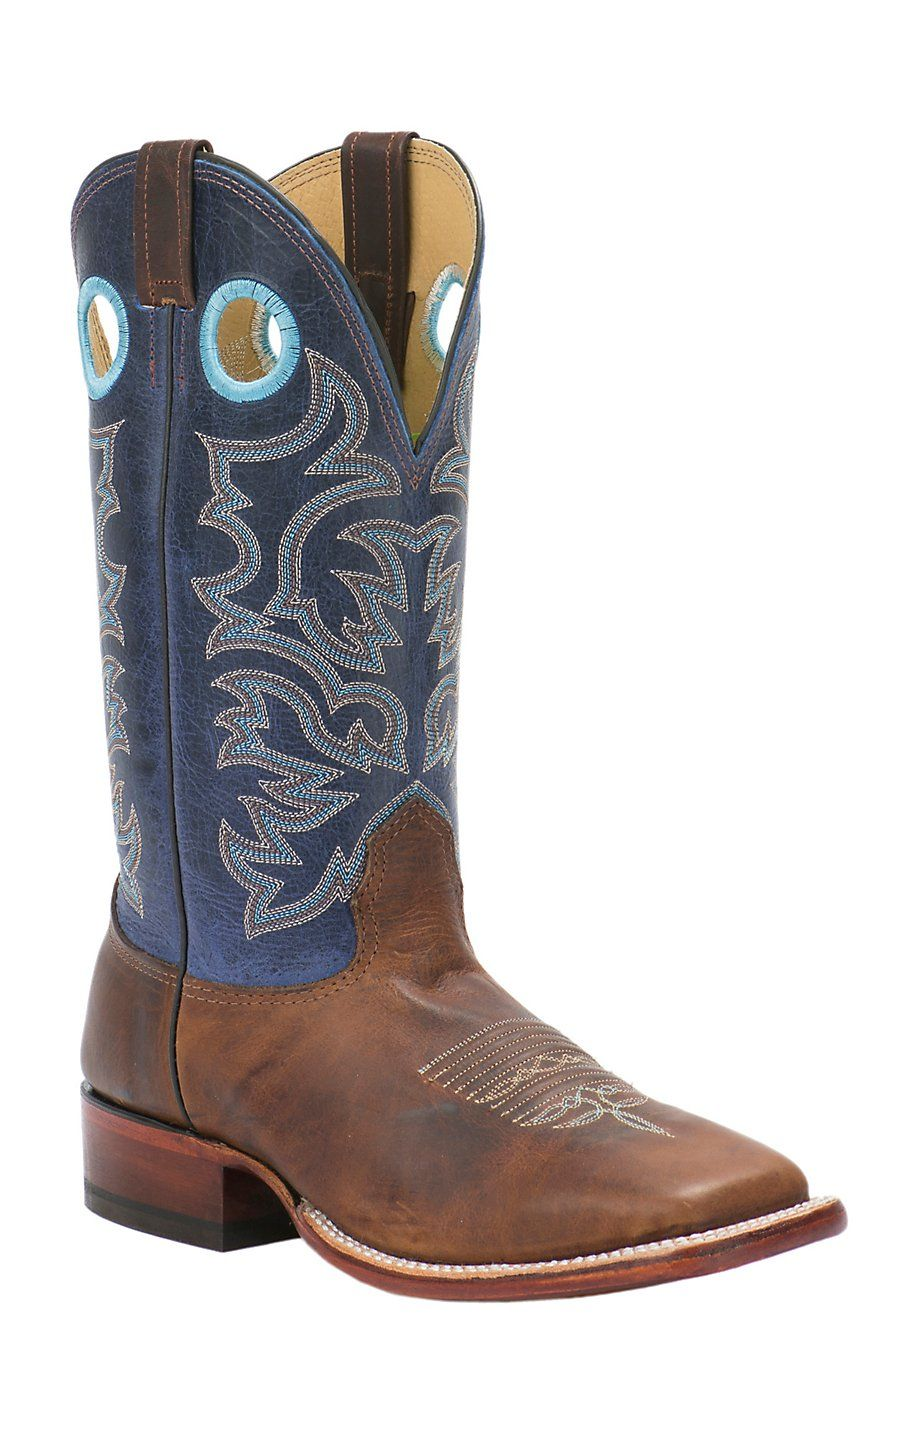 bb1bde9e4c6 Cavender s Men s Cognac Brown with Navy Top Double Welt Square Toe Western  Boots